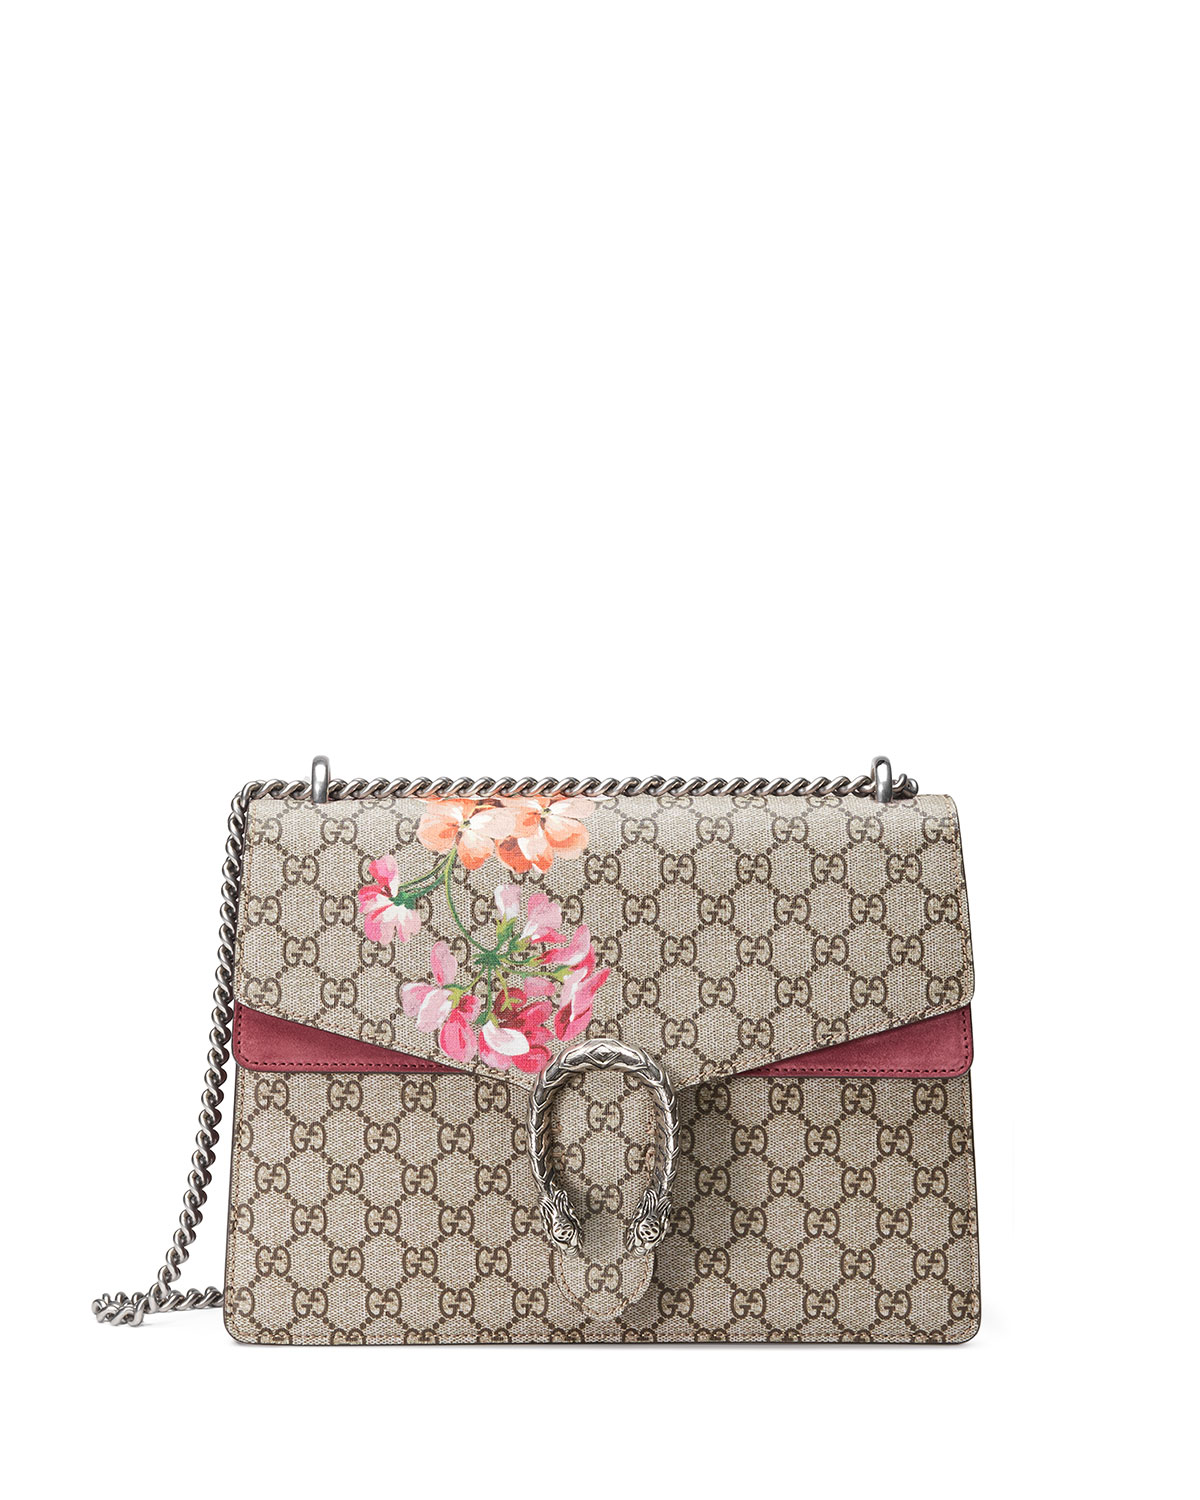 90932ff52 Gucci Dionysus GG Blooms Medium Shoulder Bag, Pink/Multi | Neiman Marcus